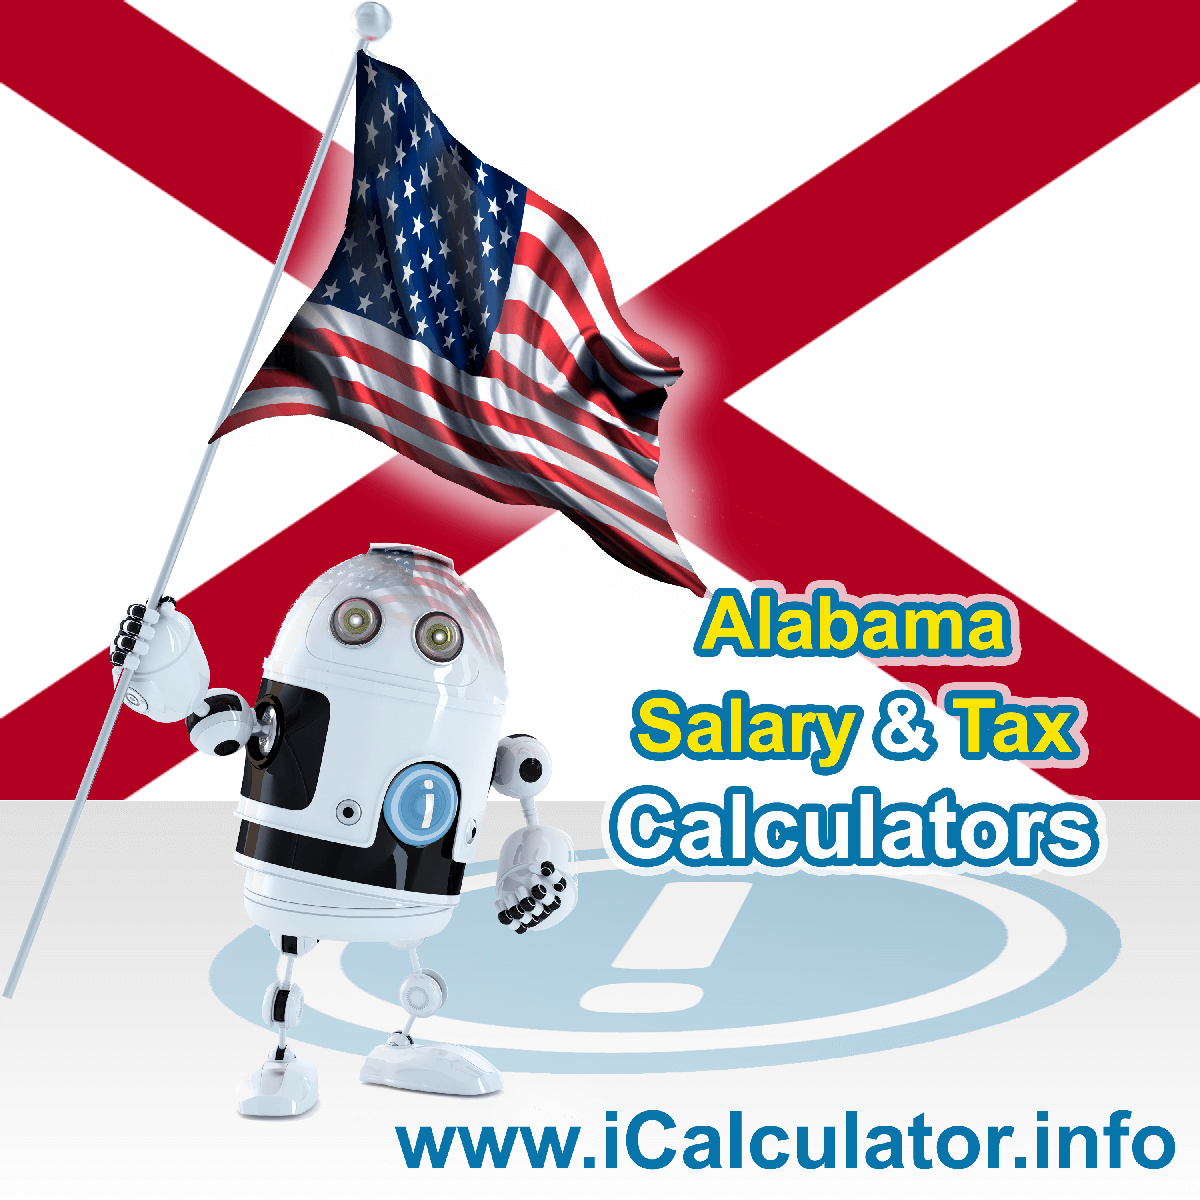 Alabama Salary Calculator 2019 | iCalculator | The Alabama Salary Calculator allows you to quickly calculate your salary after tax including Alabama State Tax, Federal State Tax, Medicare Deductions, Social Security, Capital Gains and other income tax and salary deductions complete with supporting Alabama state tax tables